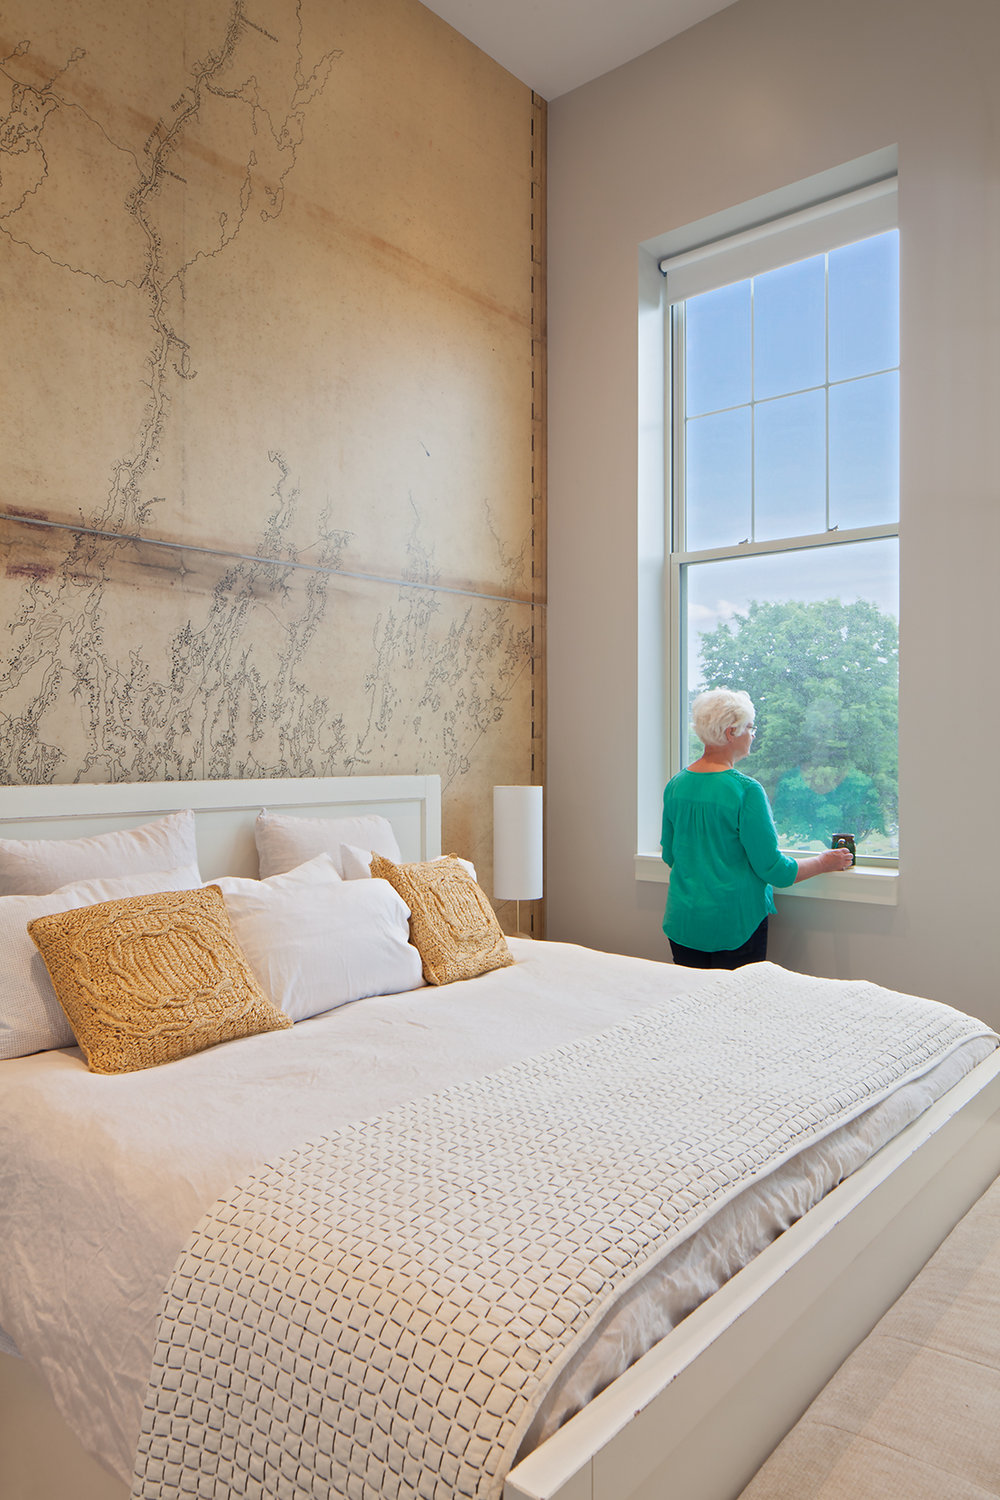 All units in the historic section benefit from natural light from original high window openings. In designing the replacement windows, the architects researched old photos to match the original mullion pattern.